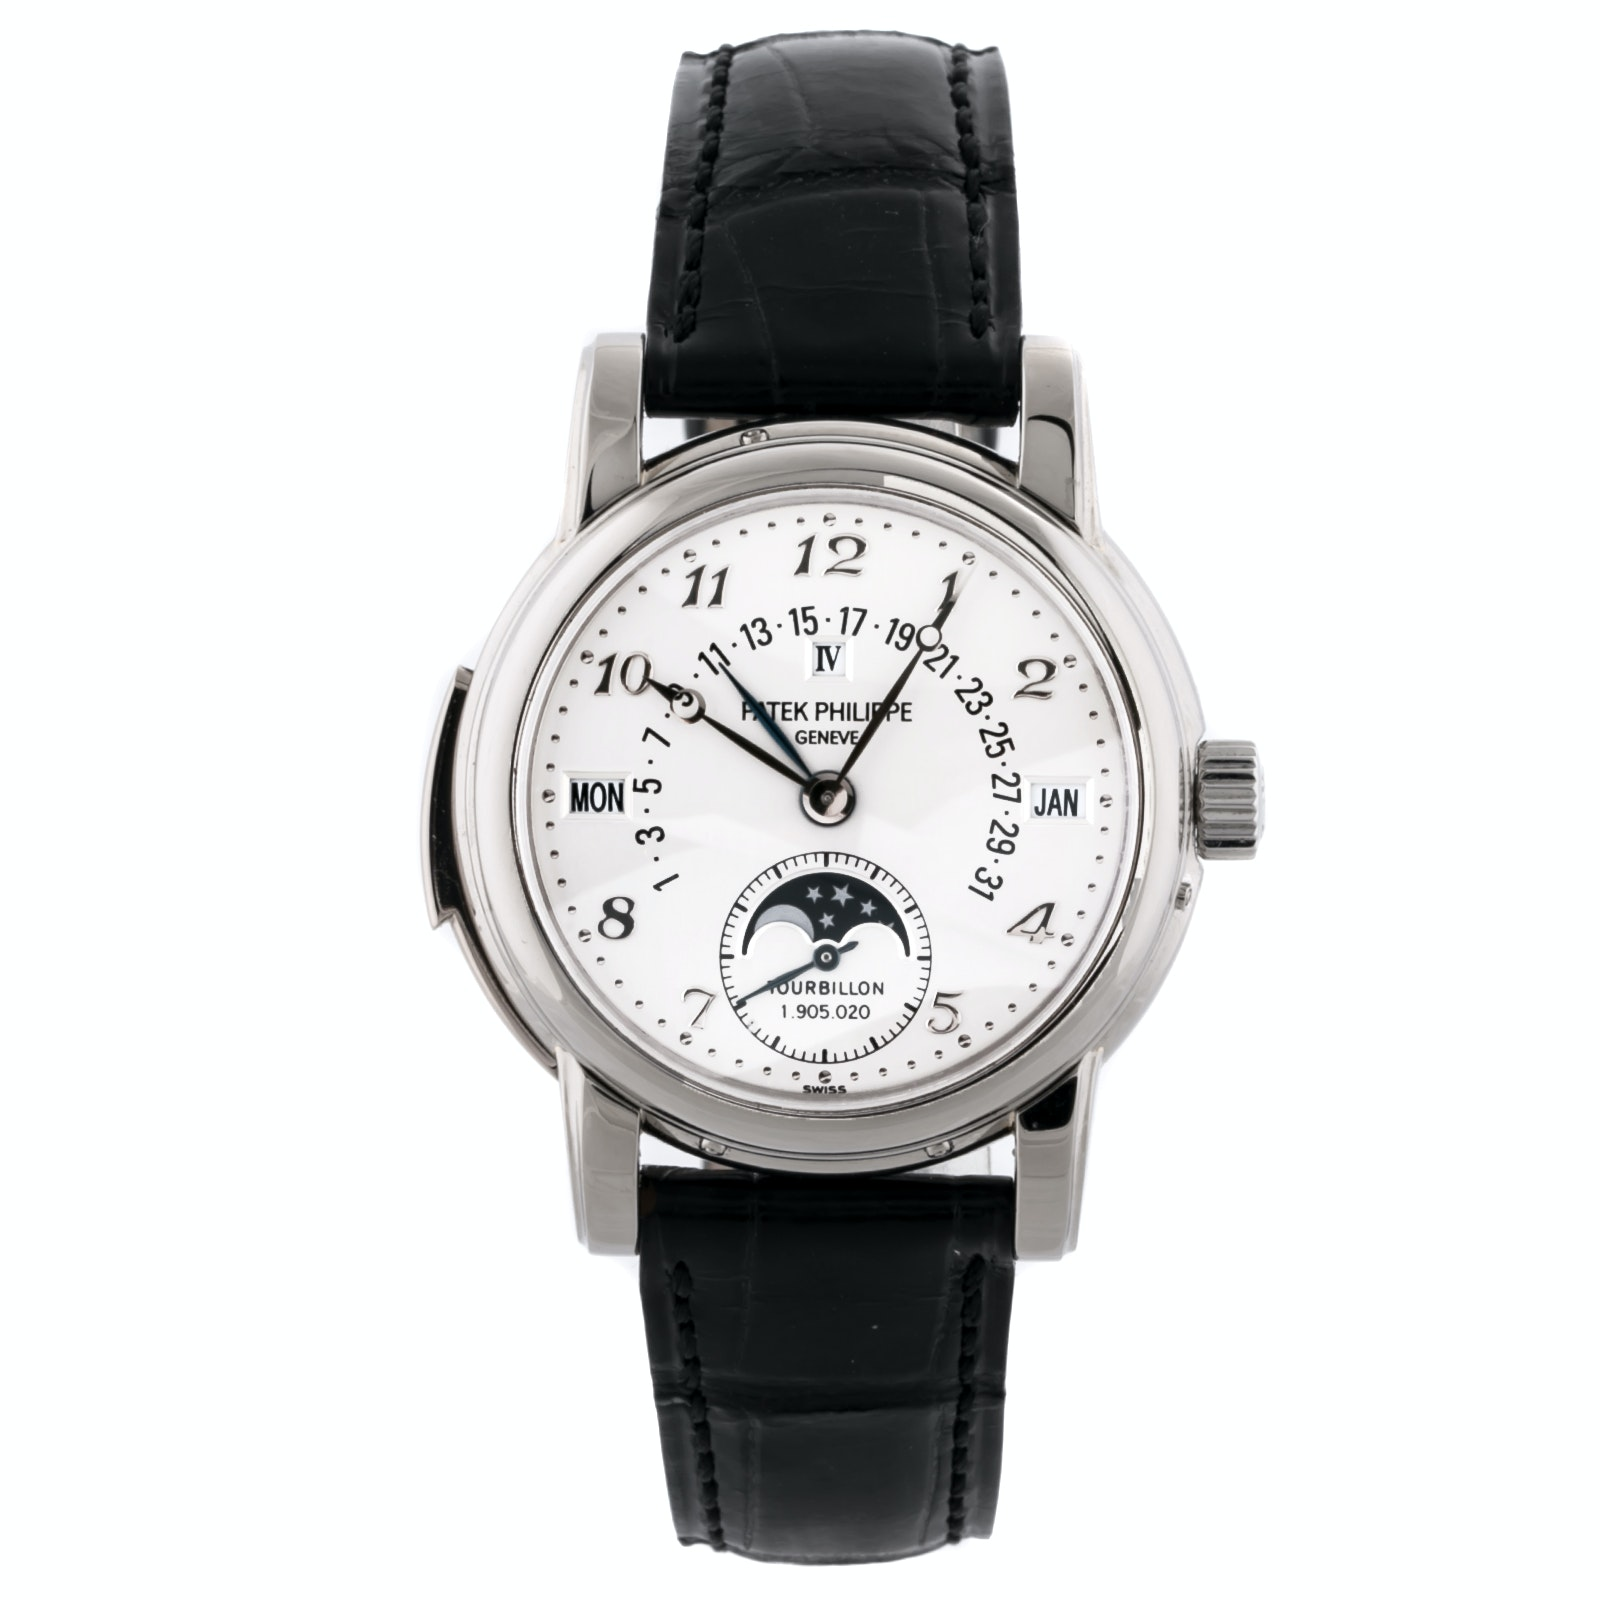 Patek Philippe Grand Complications Minute Repeater Perpetual Calendar White Dial 5016G